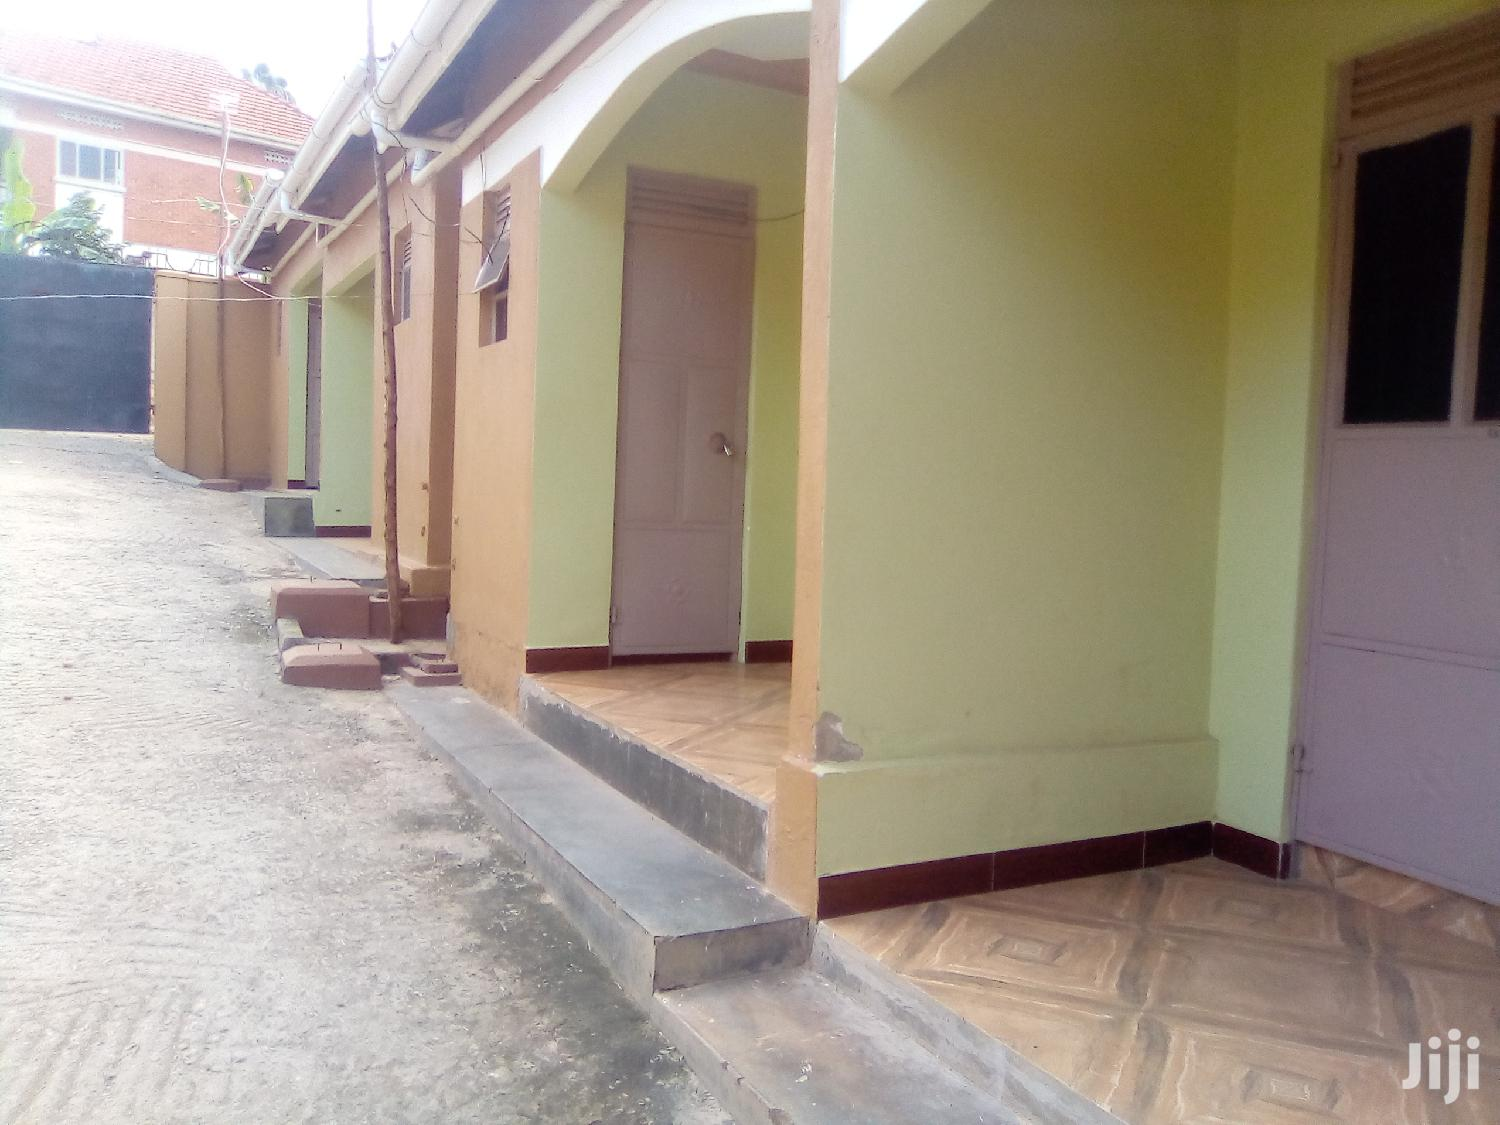 Kireka Single Room For Rent   Houses & Apartments For Rent for sale in Kampala, Central Region, Uganda